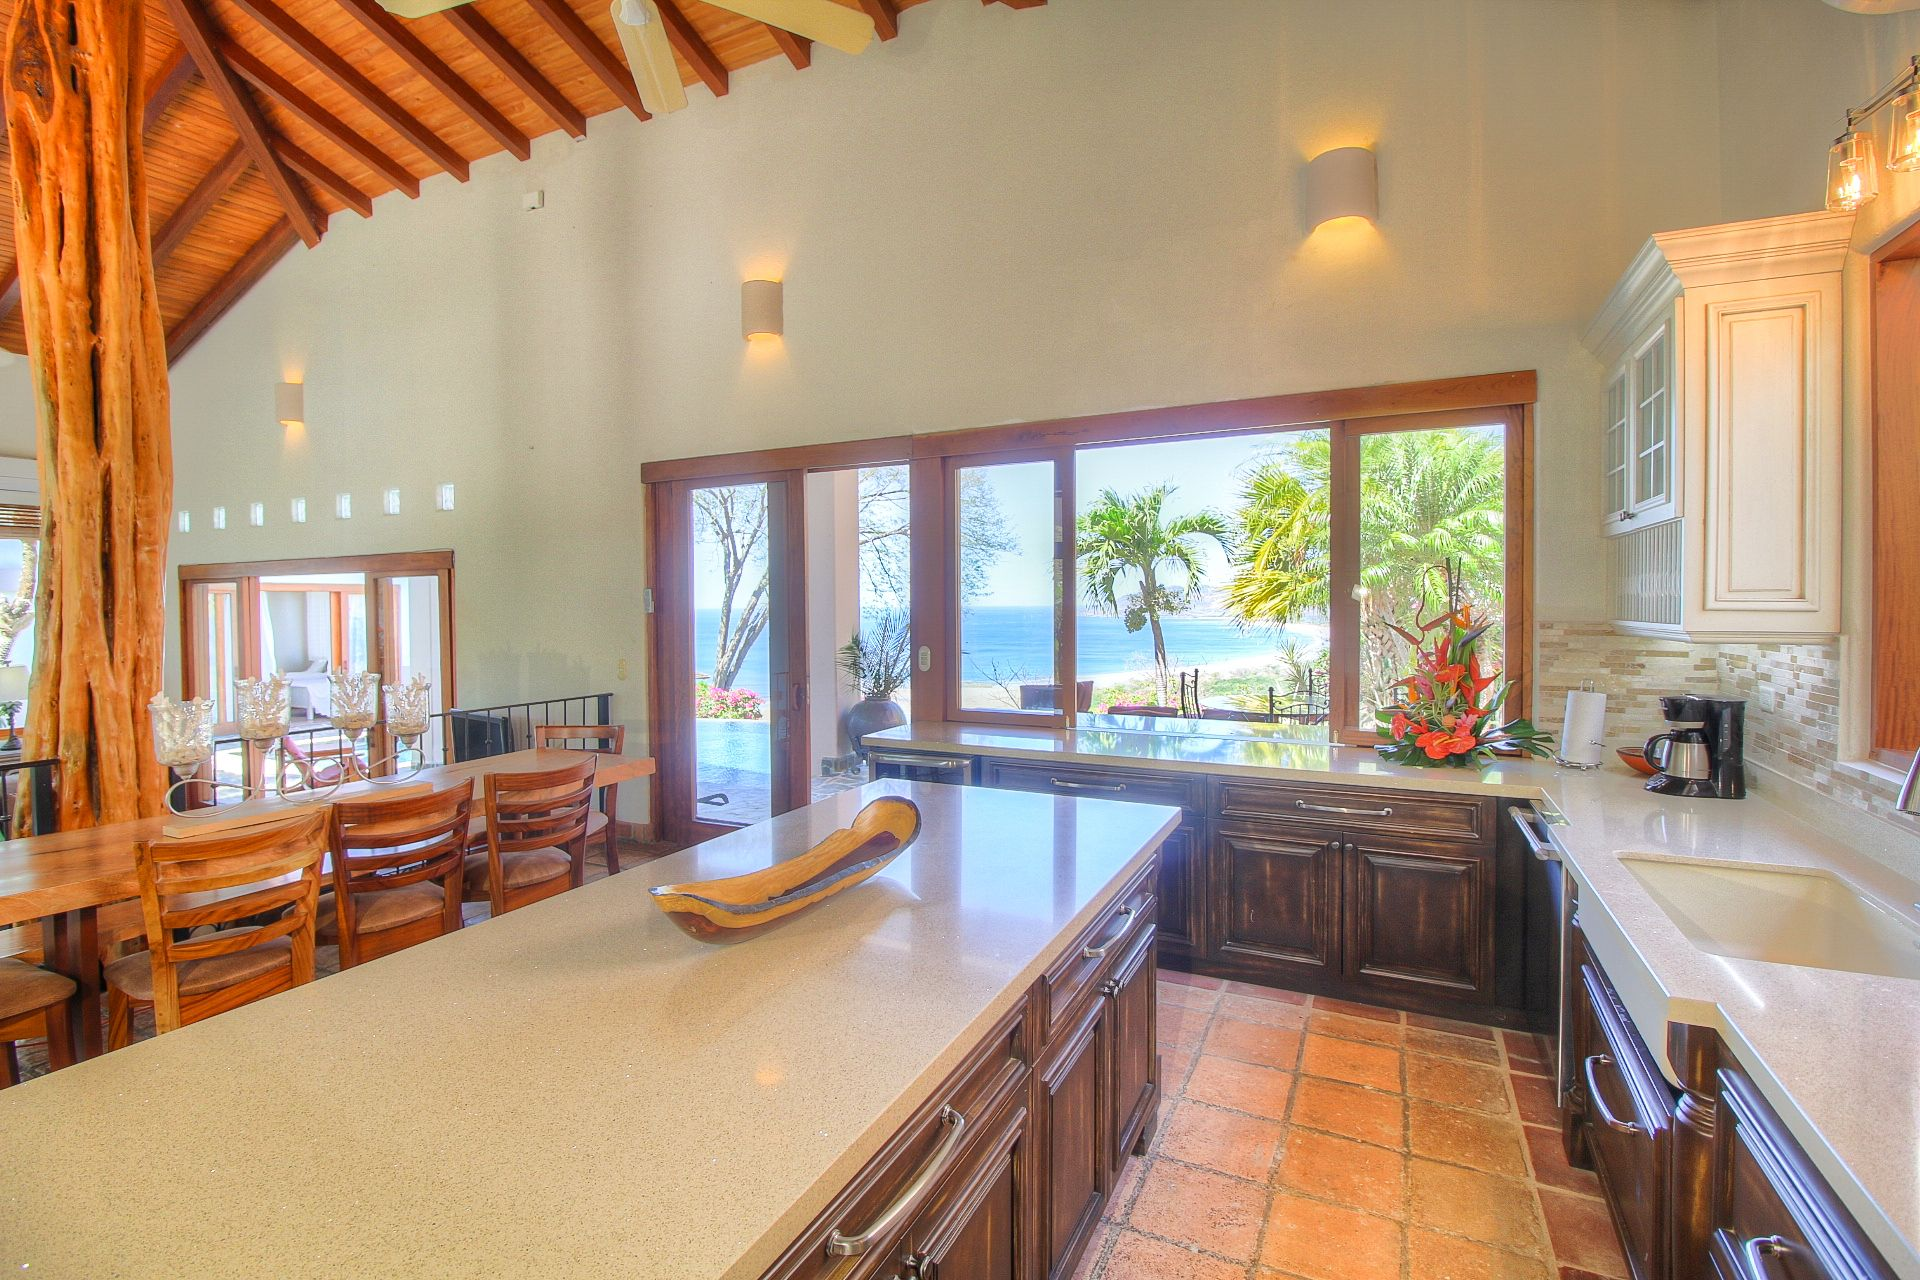 Casa Catalina's ocean-view kitchen